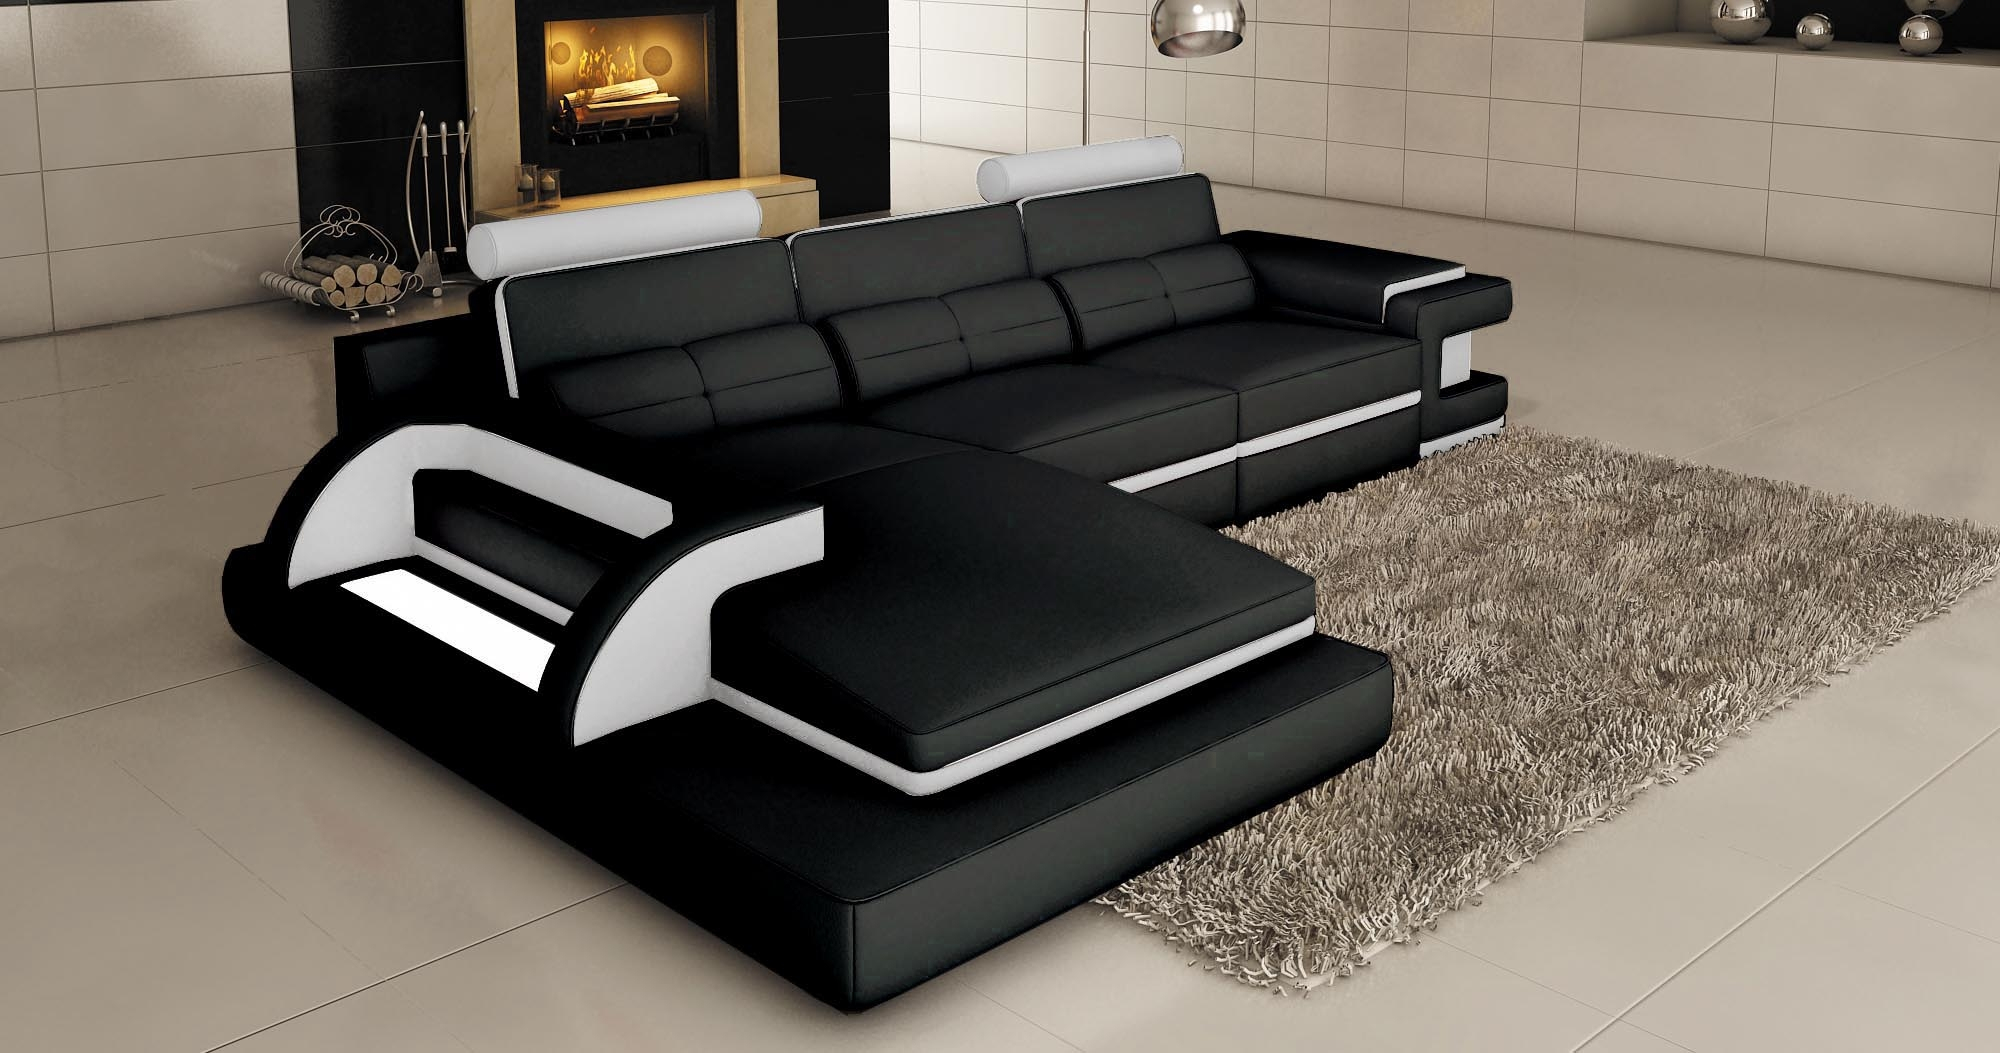 Canape Angle Cuir Rouge Beau Image Canap D Angle Rouge Stunning Canape D Angle Rouge Convertible Tissu